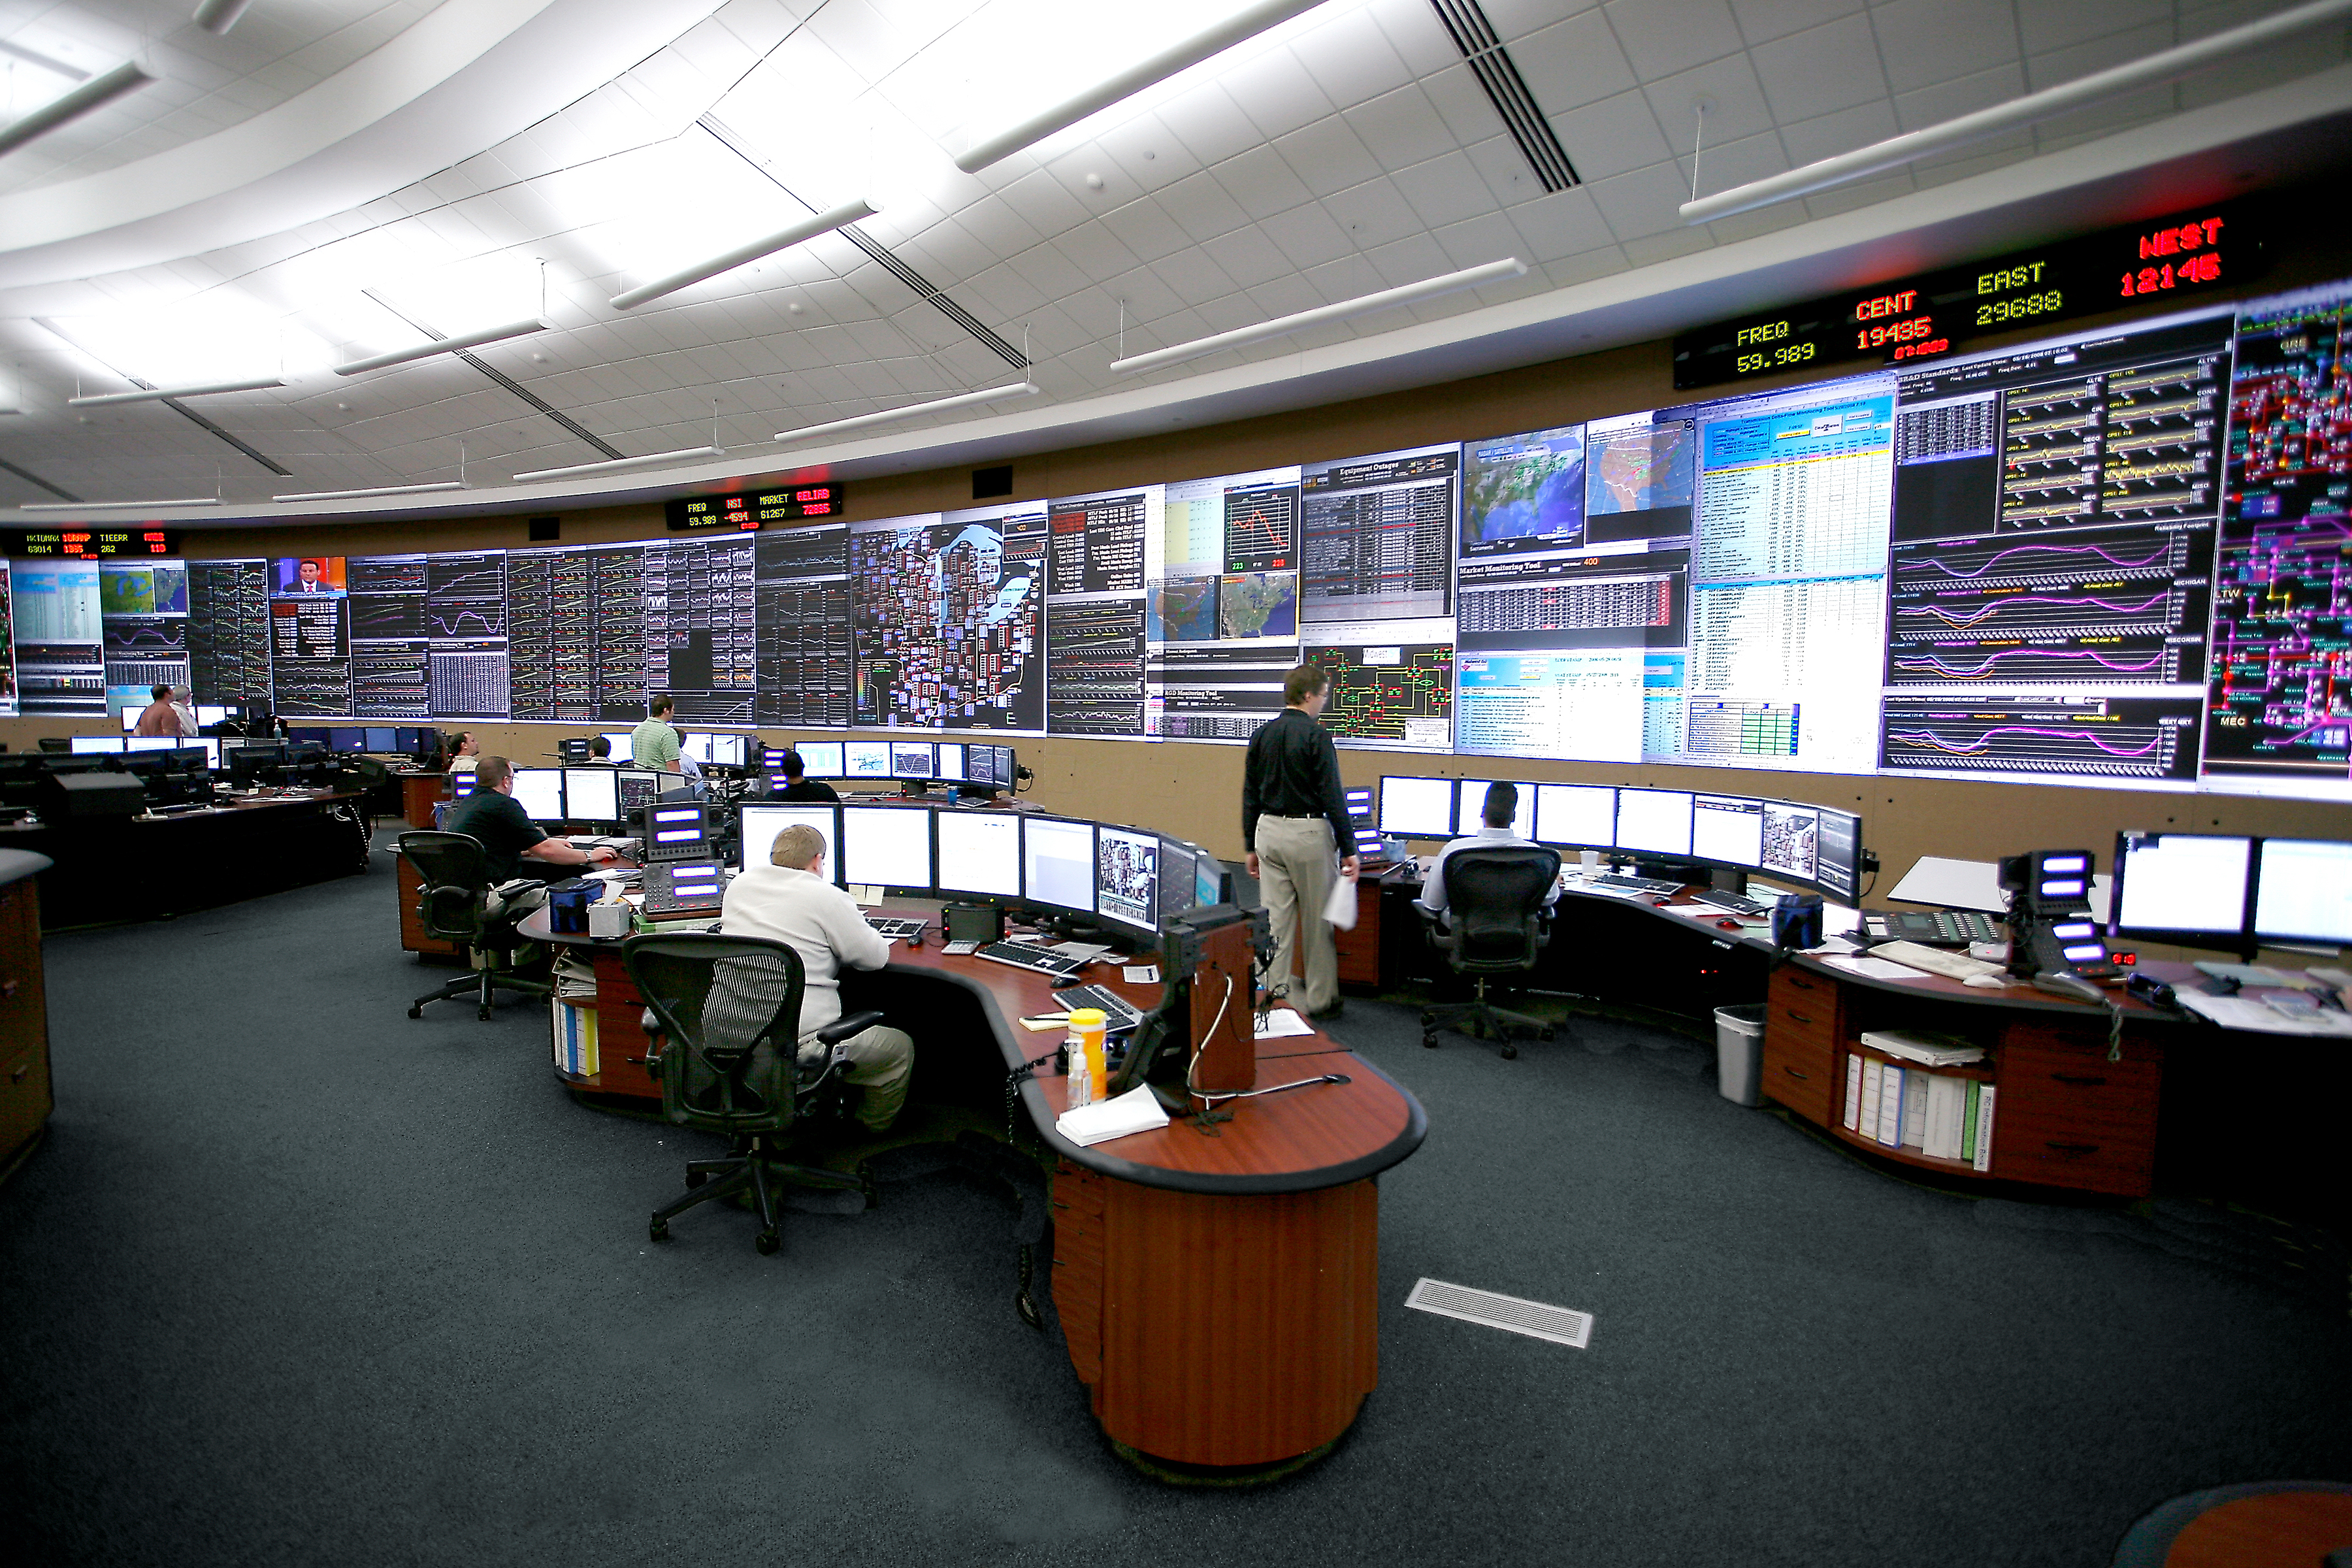 The control center of the Midcontinent Independent System Operator (MISO) in Carmel, Indiana. MISO operates a similar but smaller center in Eagan.